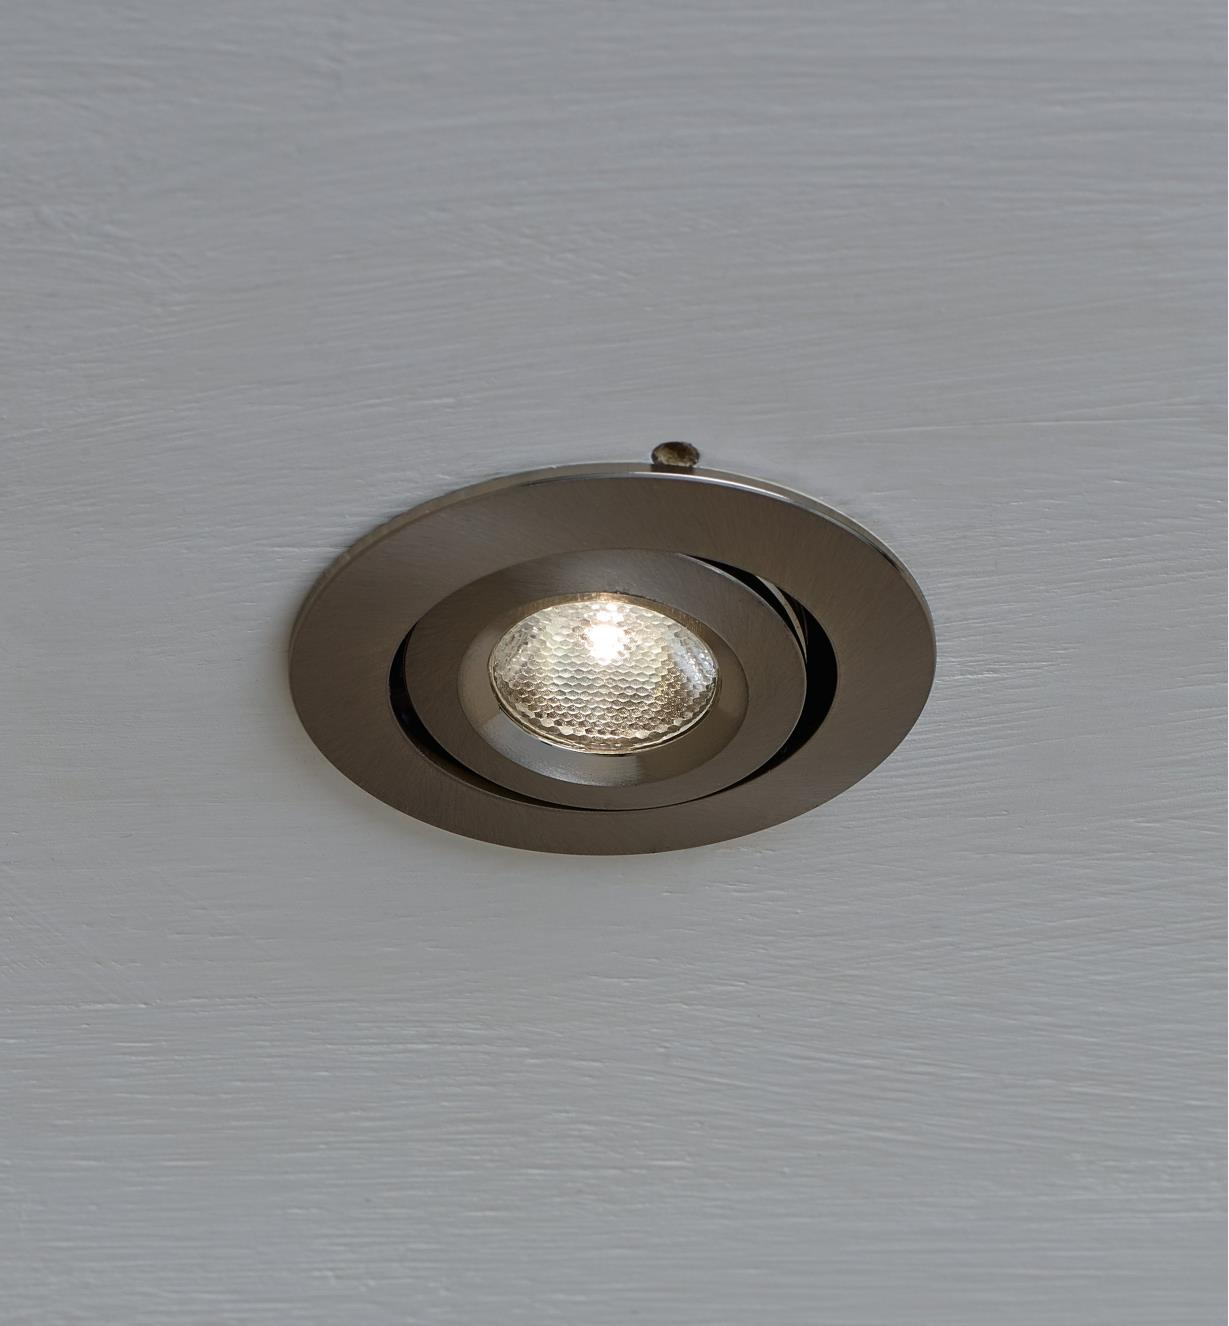 "2"" Natural White LED Spotlight installed in a ceiling"